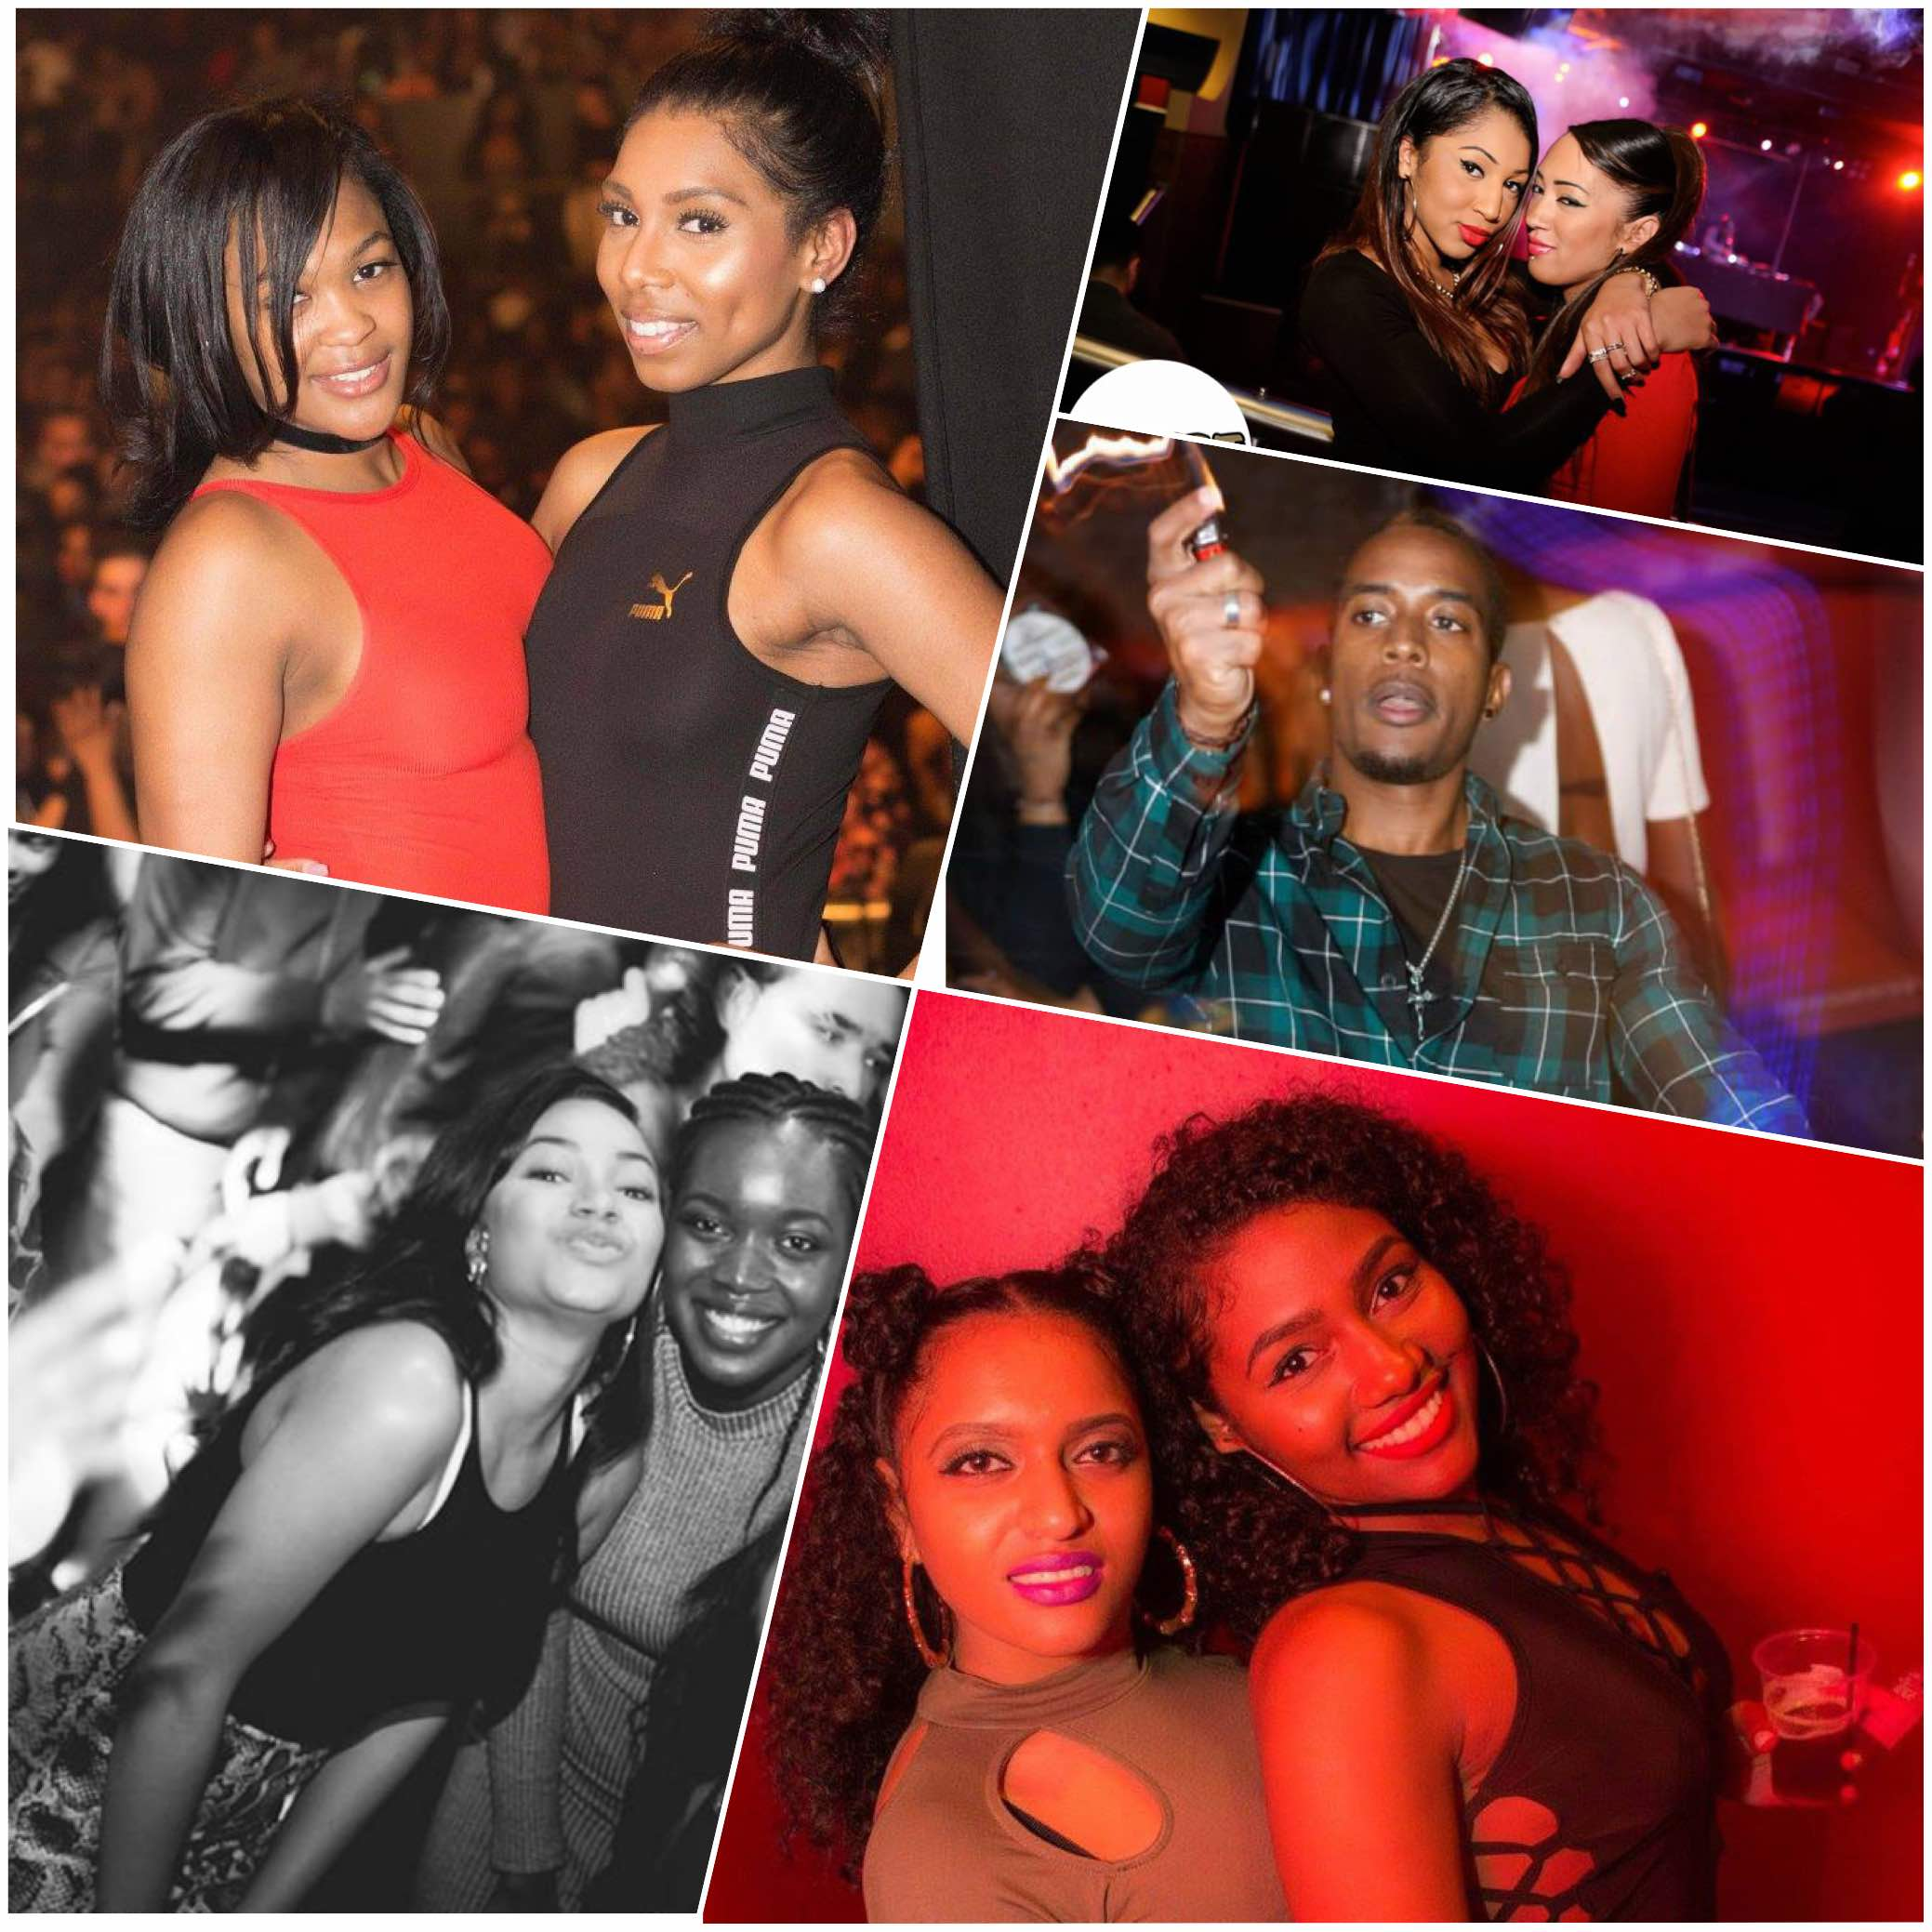 Bashment Party Picture Collage